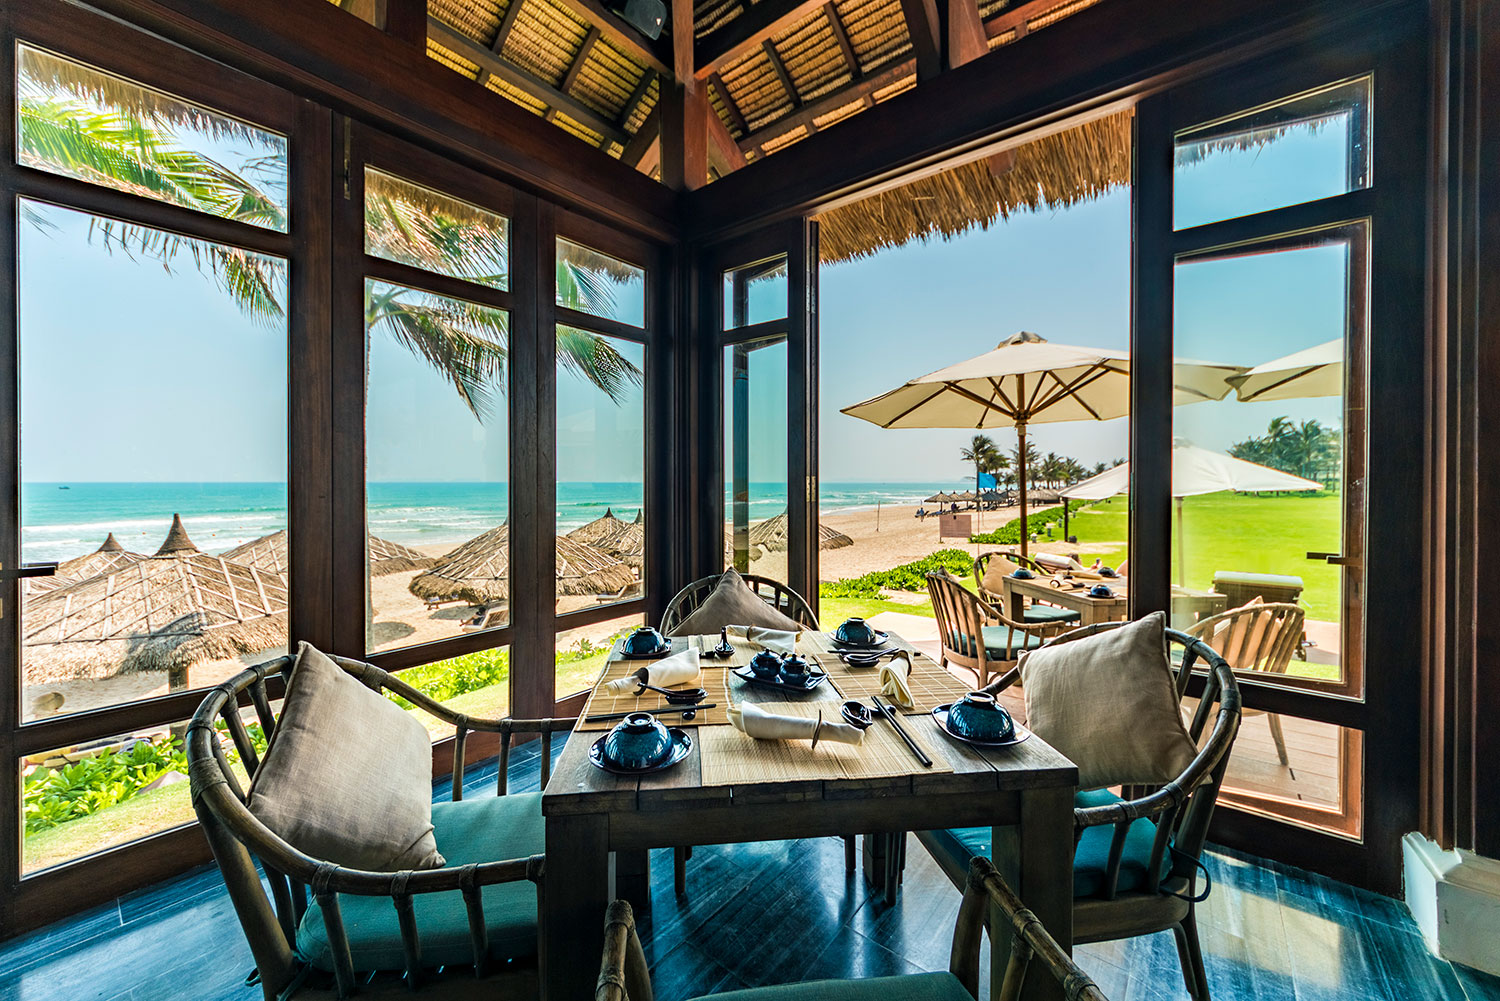 Beautiful Surroundings - As you watch the sunset over the ocean and listen to the sounds of the waves crashing on the beach you will fall in love with Vietnam all over again at this atmospheric restaurant.